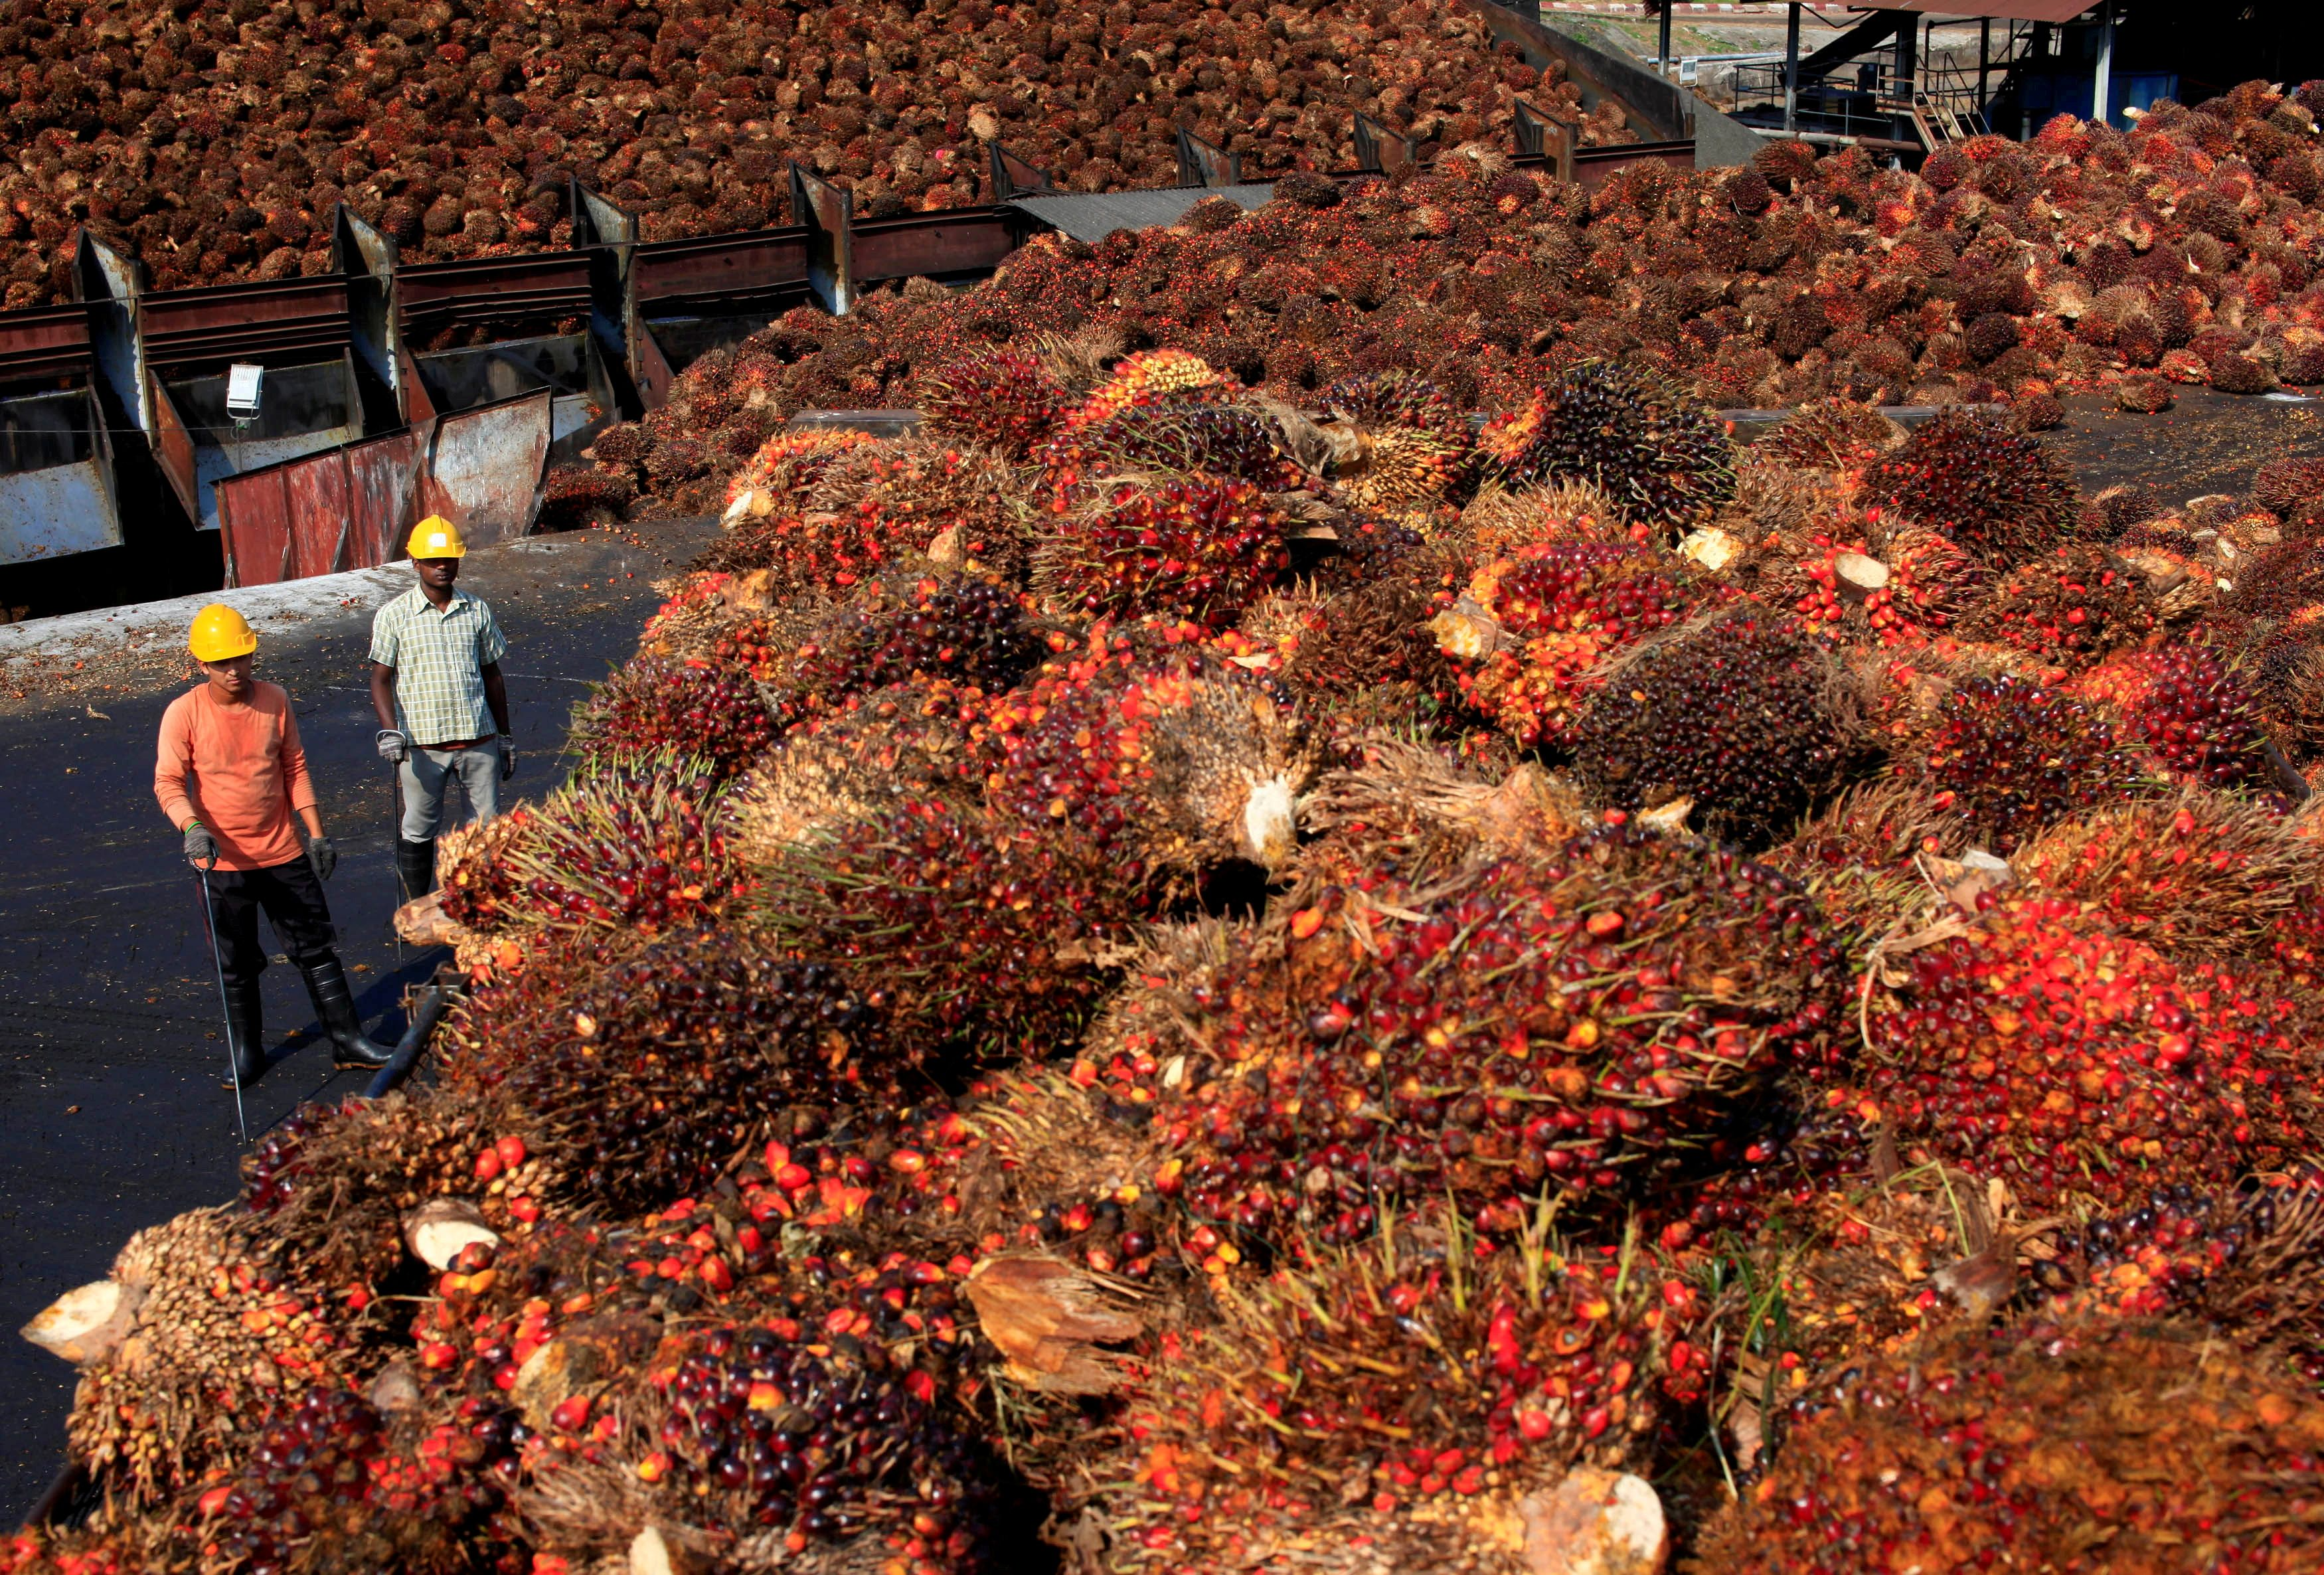 Malaysian palm giant workers mistreated, faces labour abuse - Fin